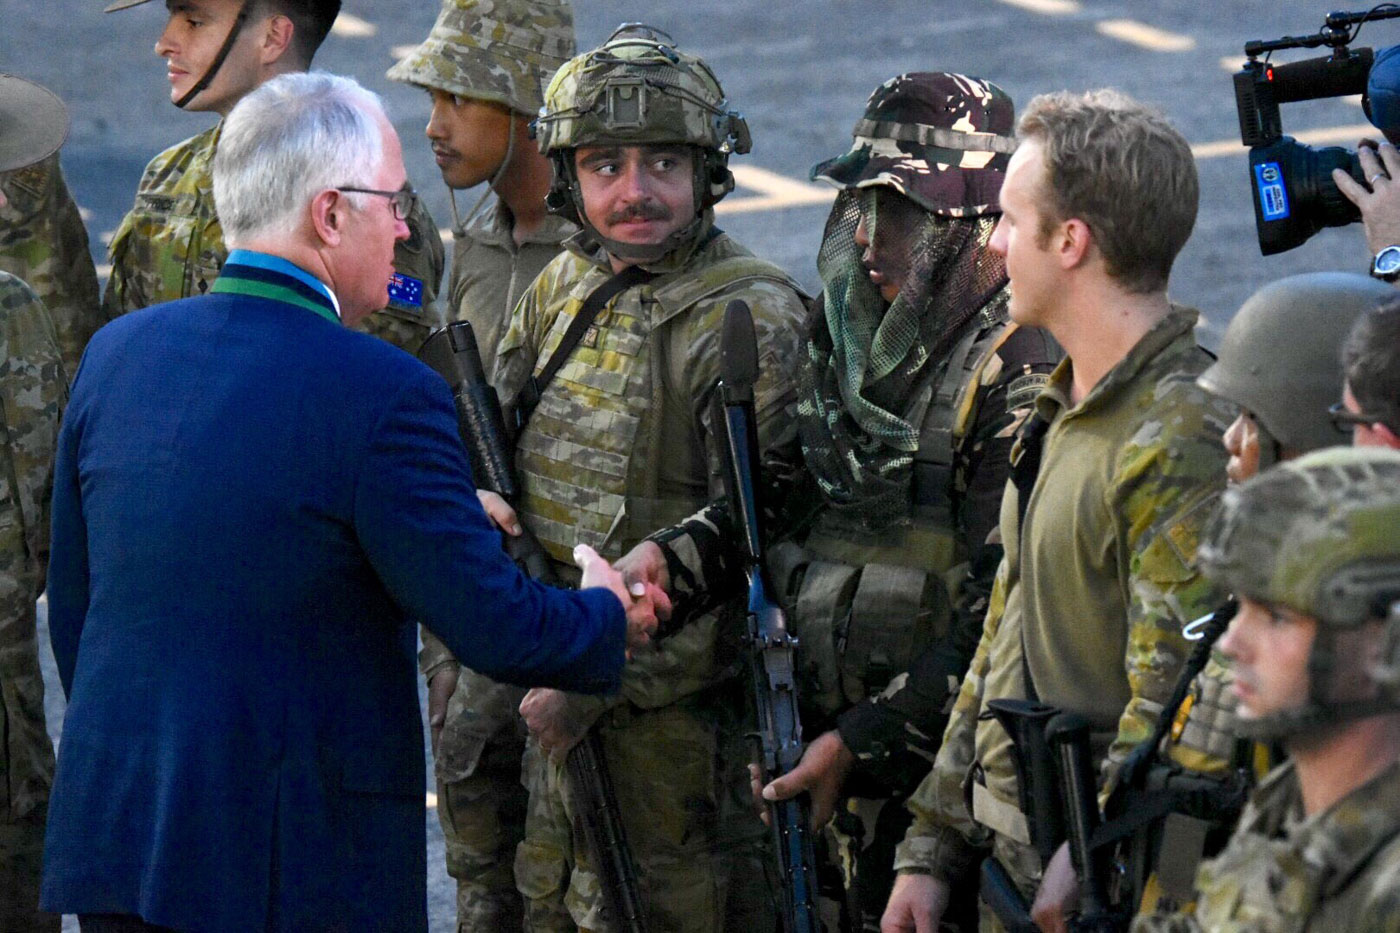 TALK TO MEN. Australian Prime Minister Malcolm Turnbull took the opportunity to talk to the Australian troops deployed in the Philippines